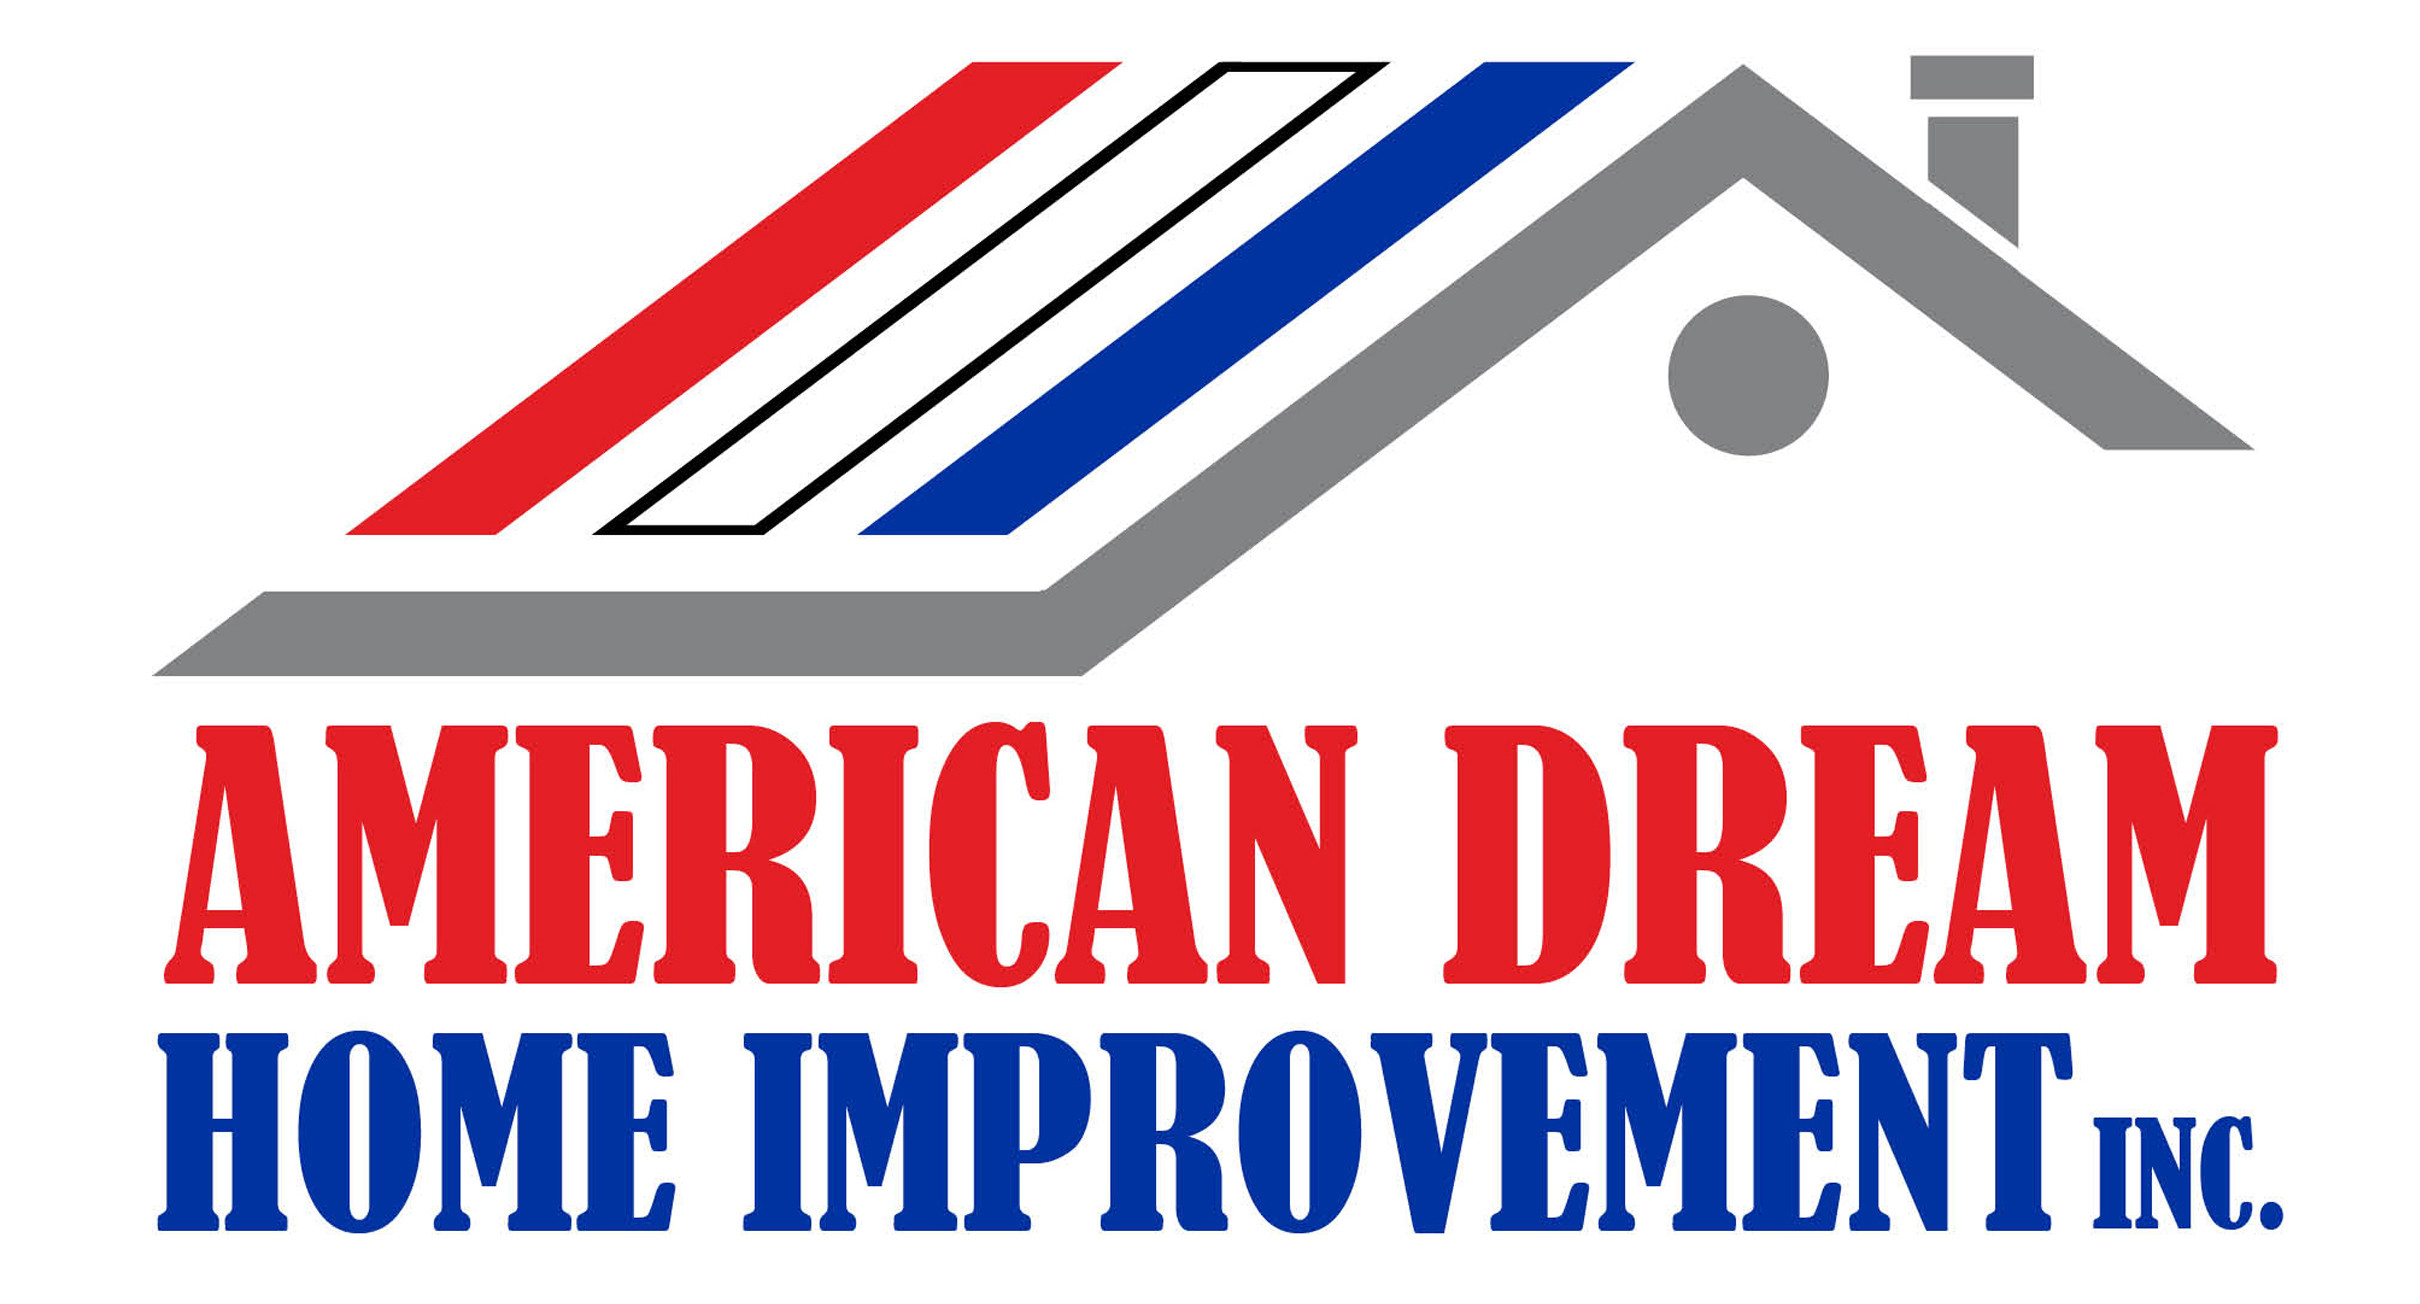 American Dream Home Improvement Ny Roofing Siding Windows